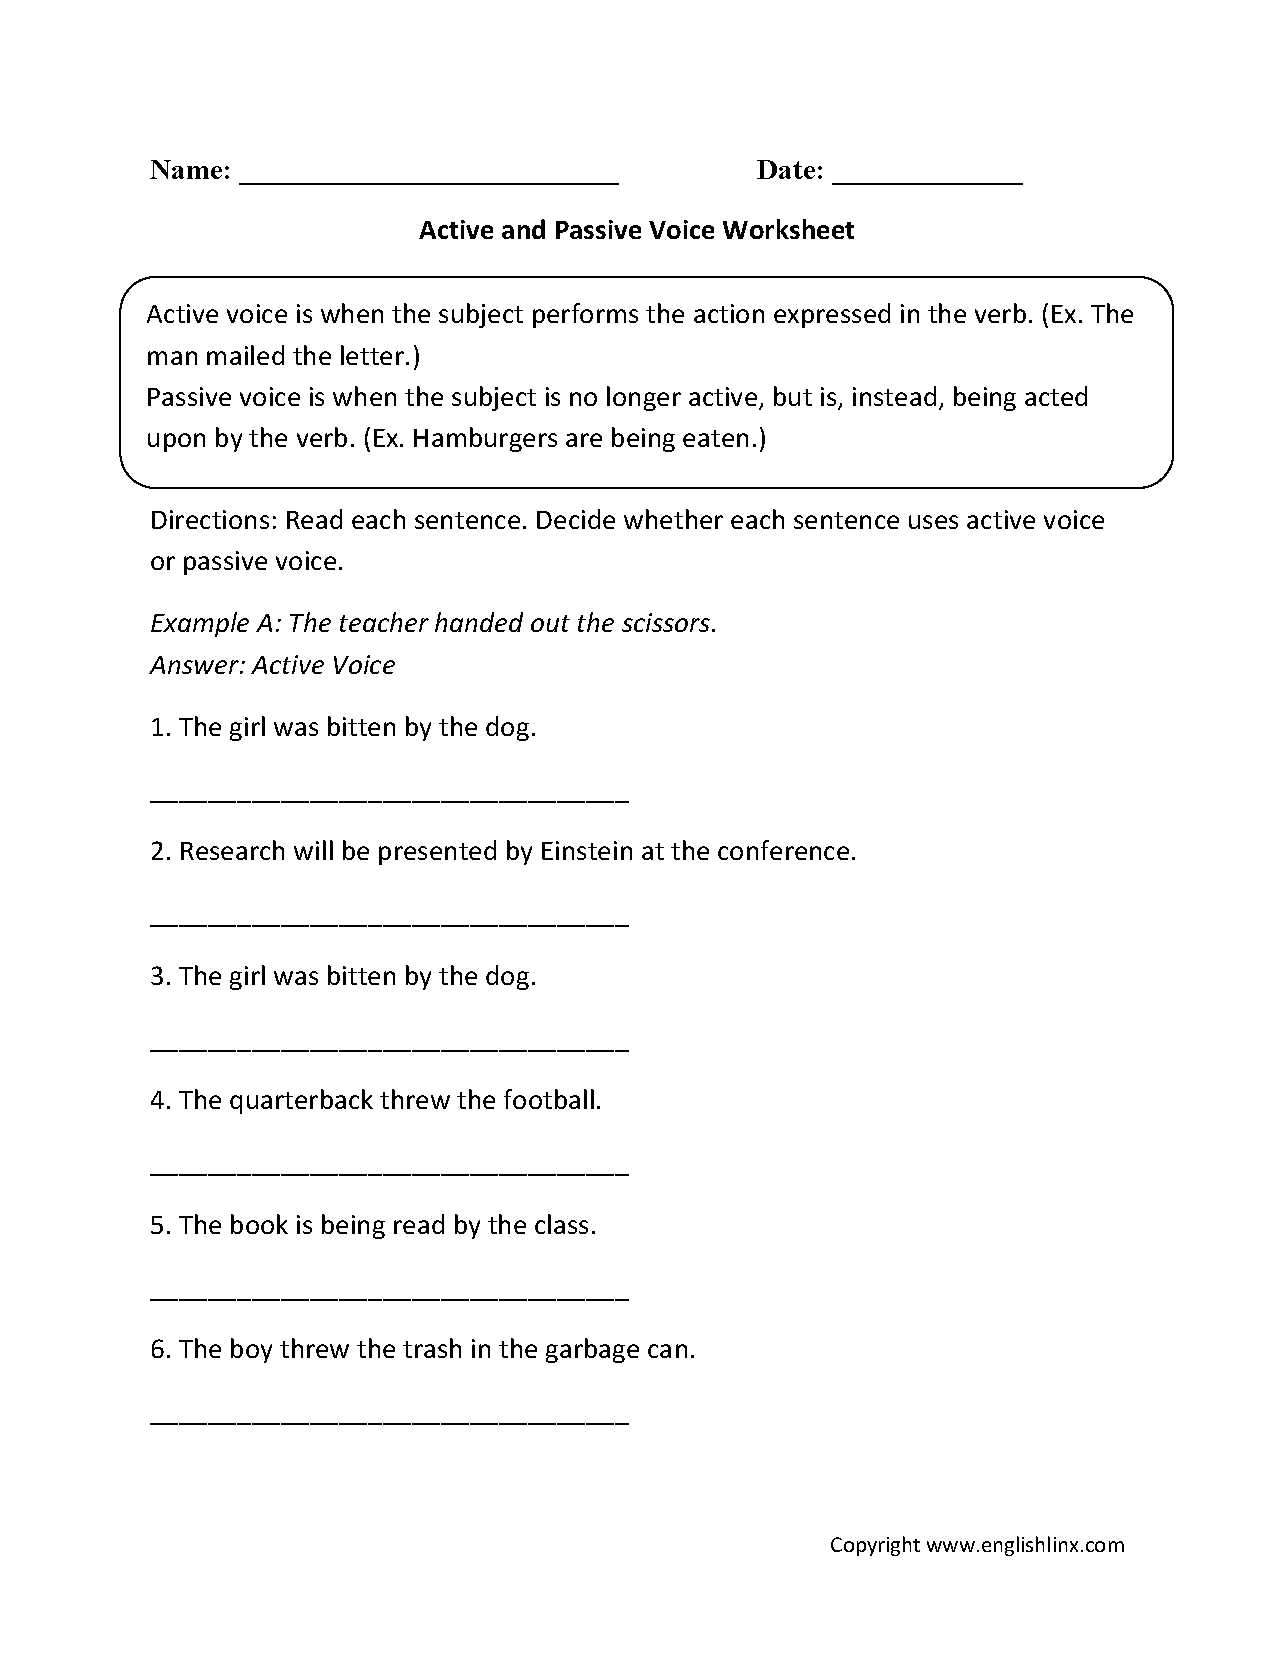 Transformation Practice Worksheet Also Active and Passive Voice Worksheet Great English tools